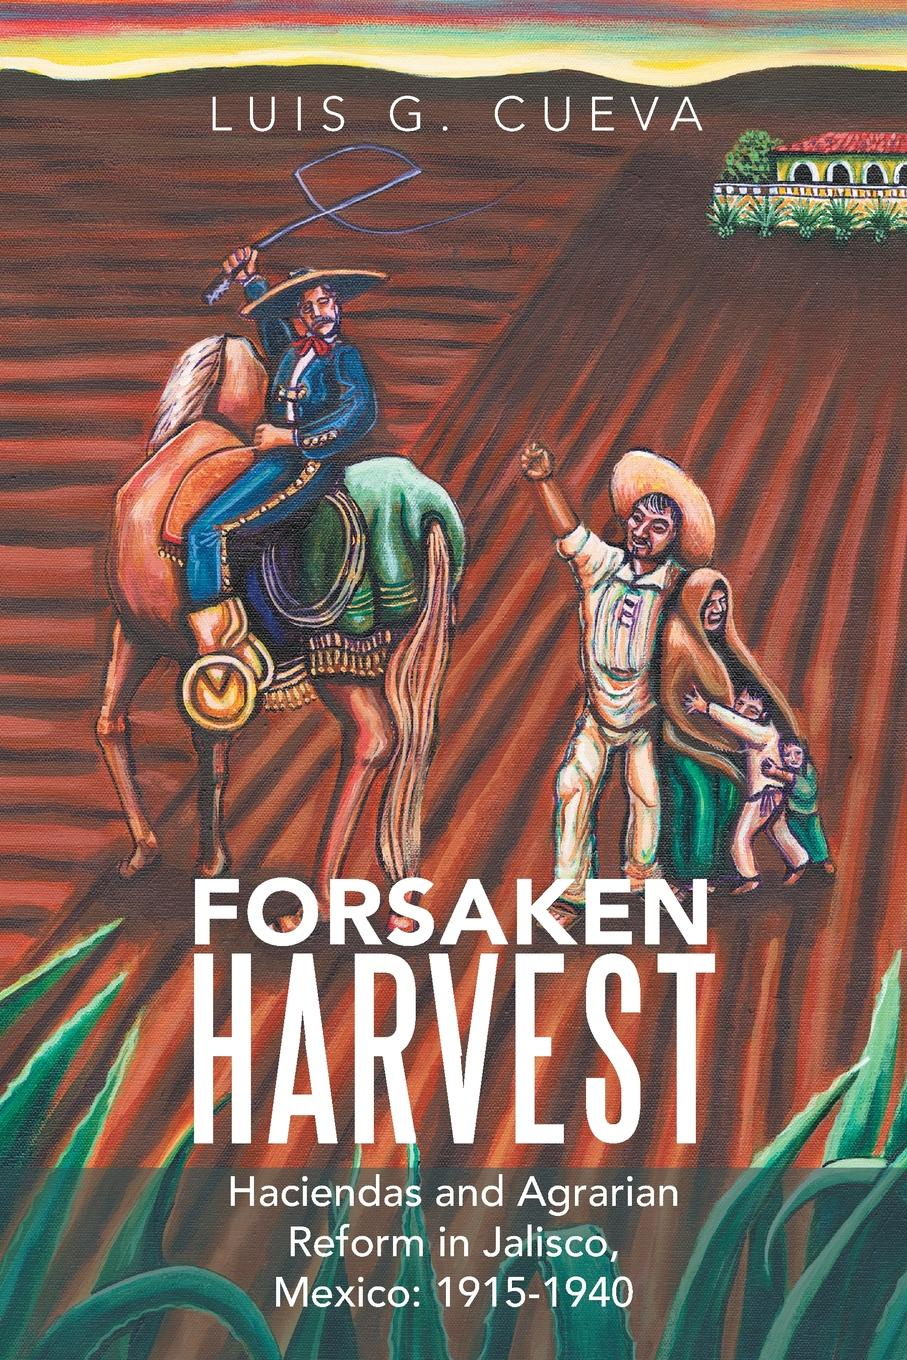 Luis G. Cueva Forsaken Harvest. Haciendas and Agrarian Reform in Jalisco, Mexico: 1915-1940 miraculous images and votive offerings in mexico